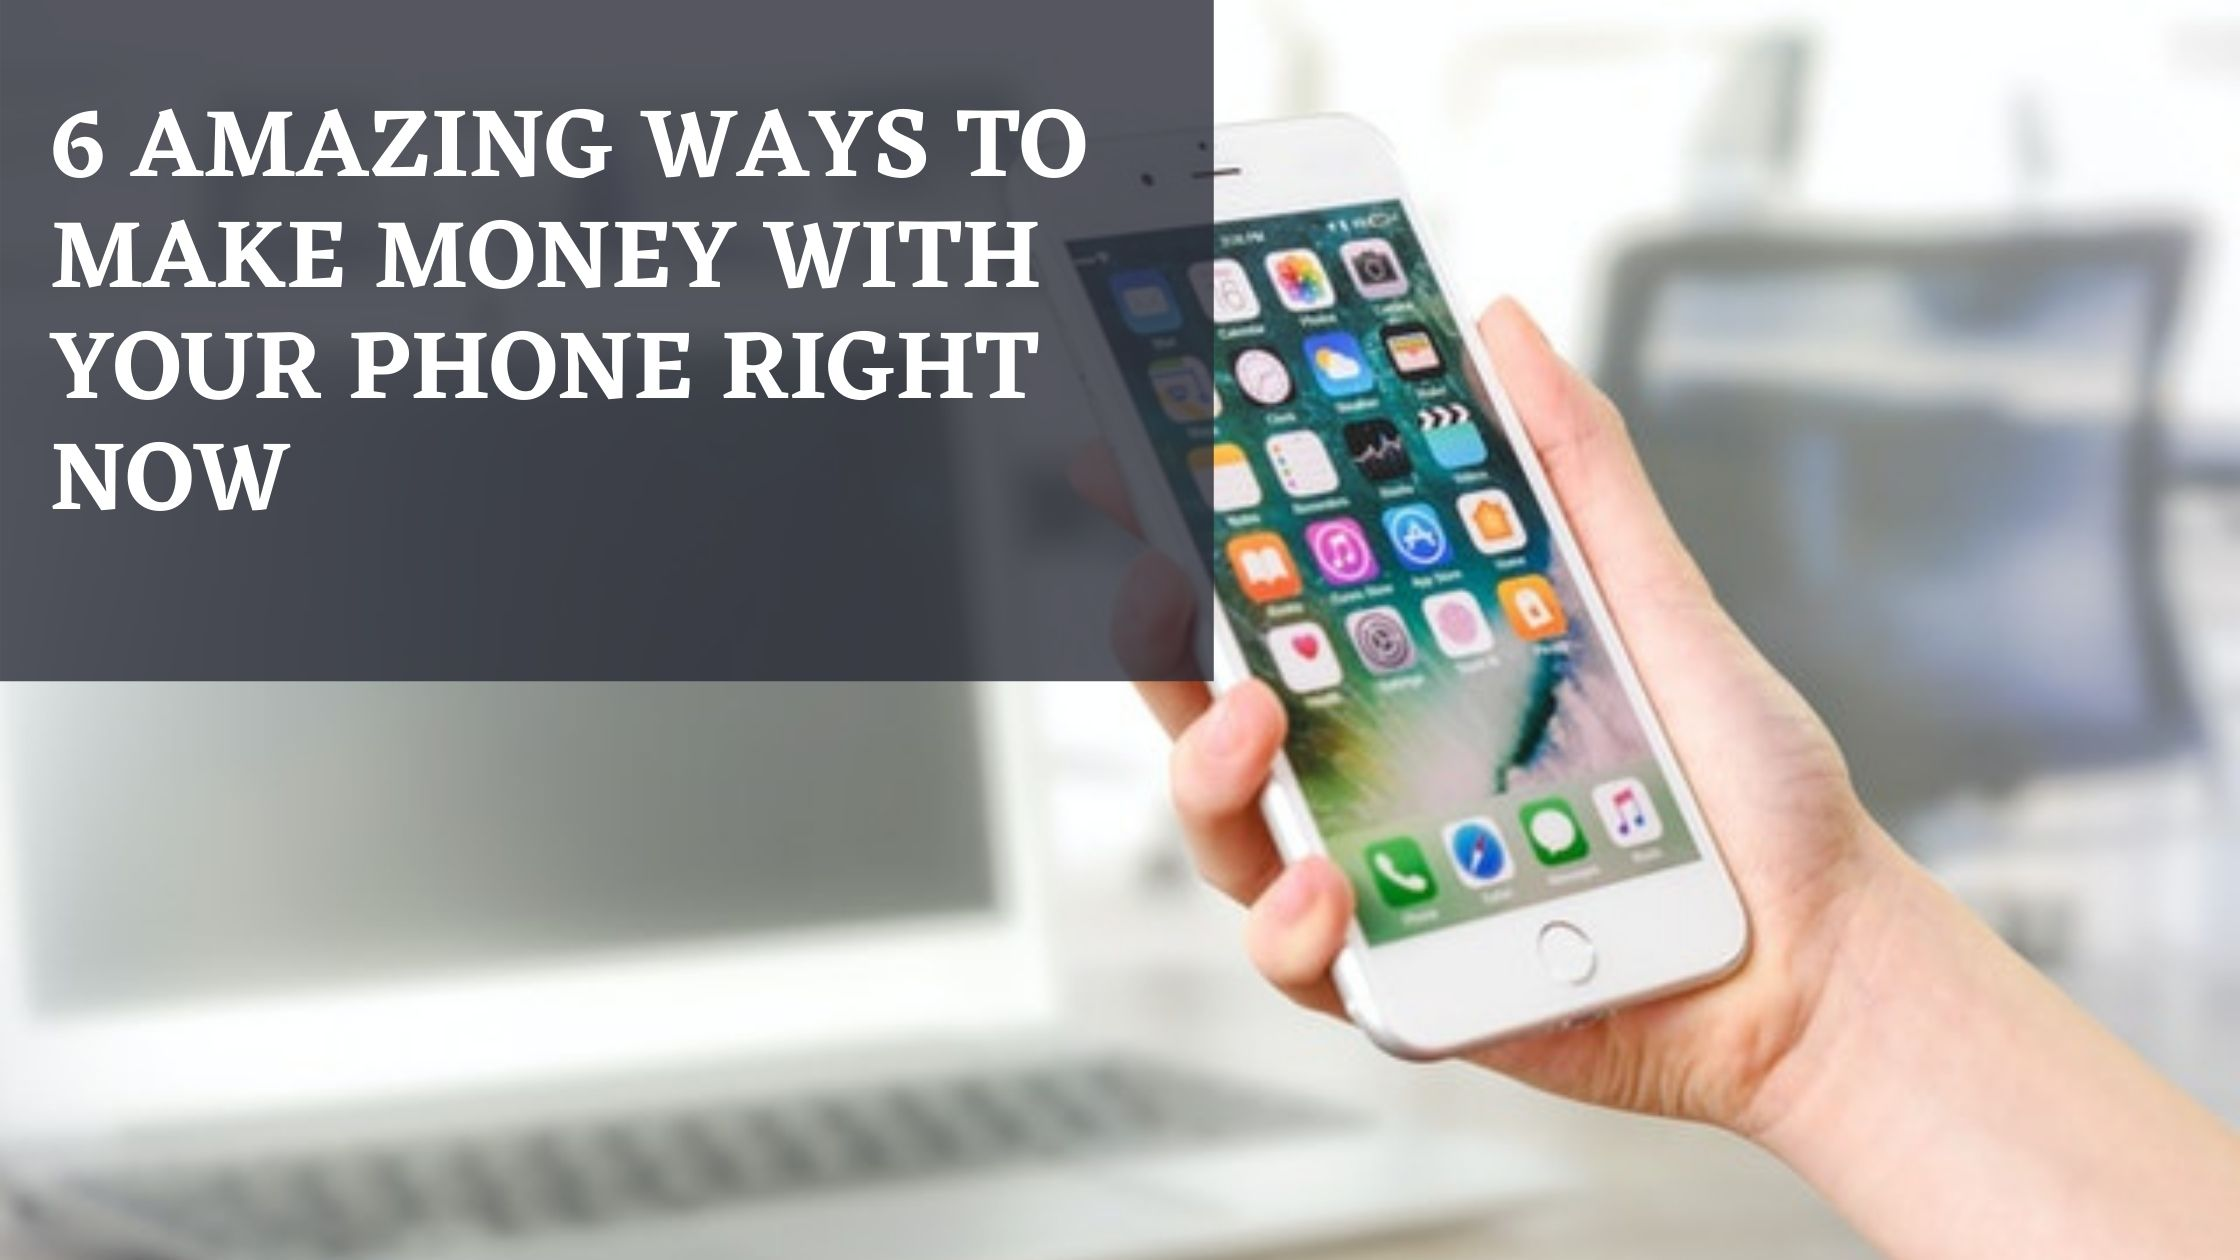 6 Amazing Ways to Make Money with your Phone